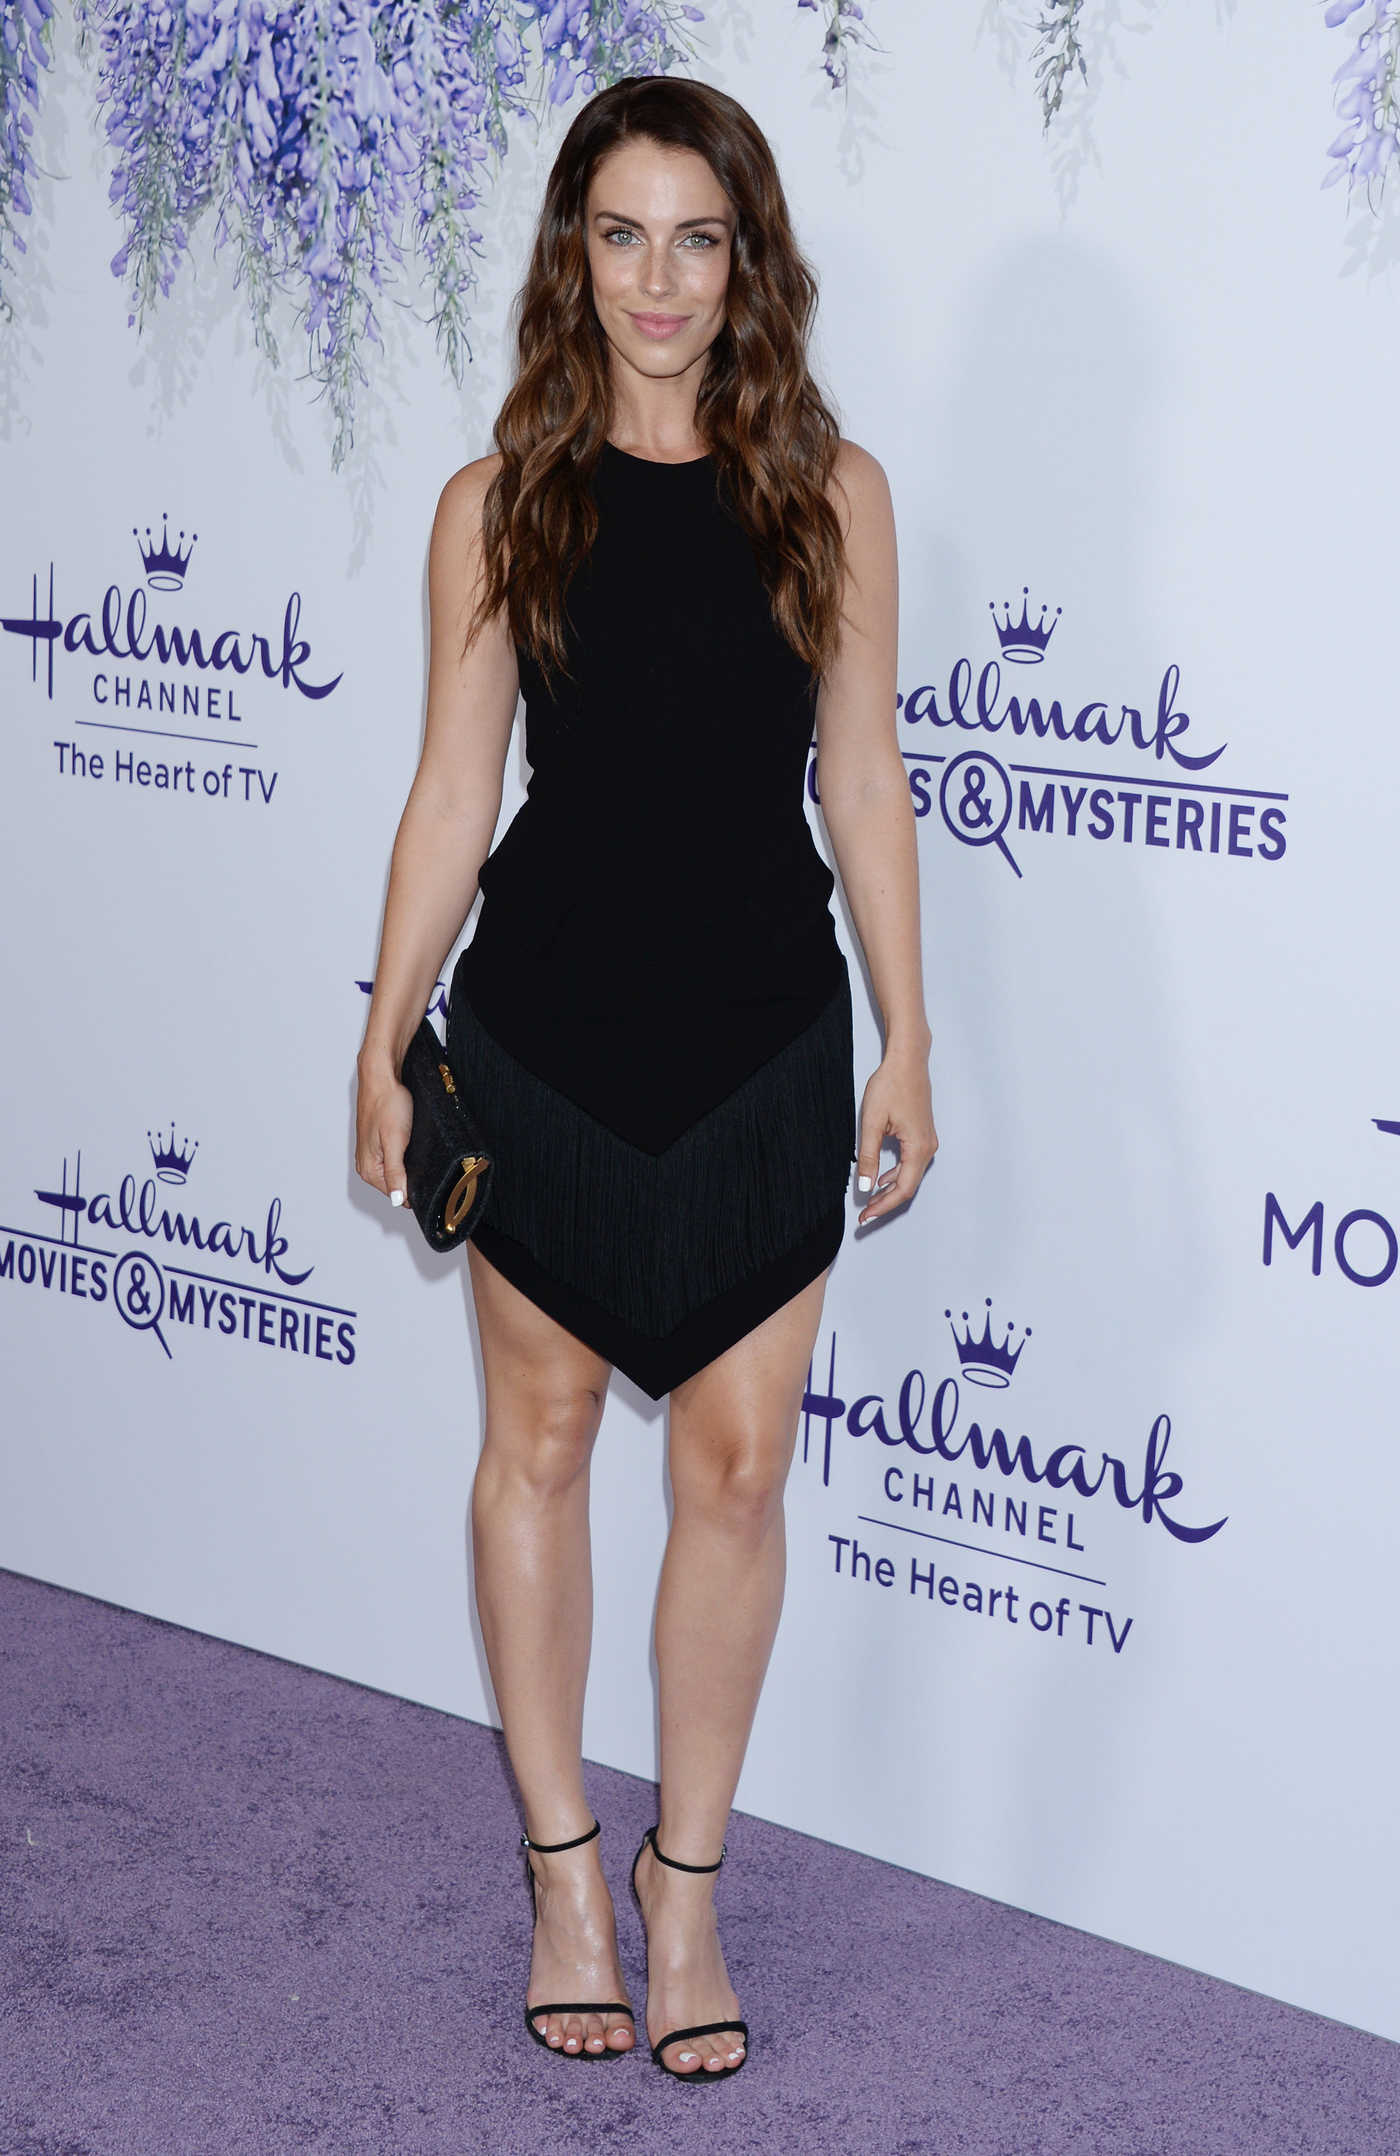 Jessica Lowndes Attends Hallmark's Evening Gala TCA Summer Press Tour in LA 07/26/2018